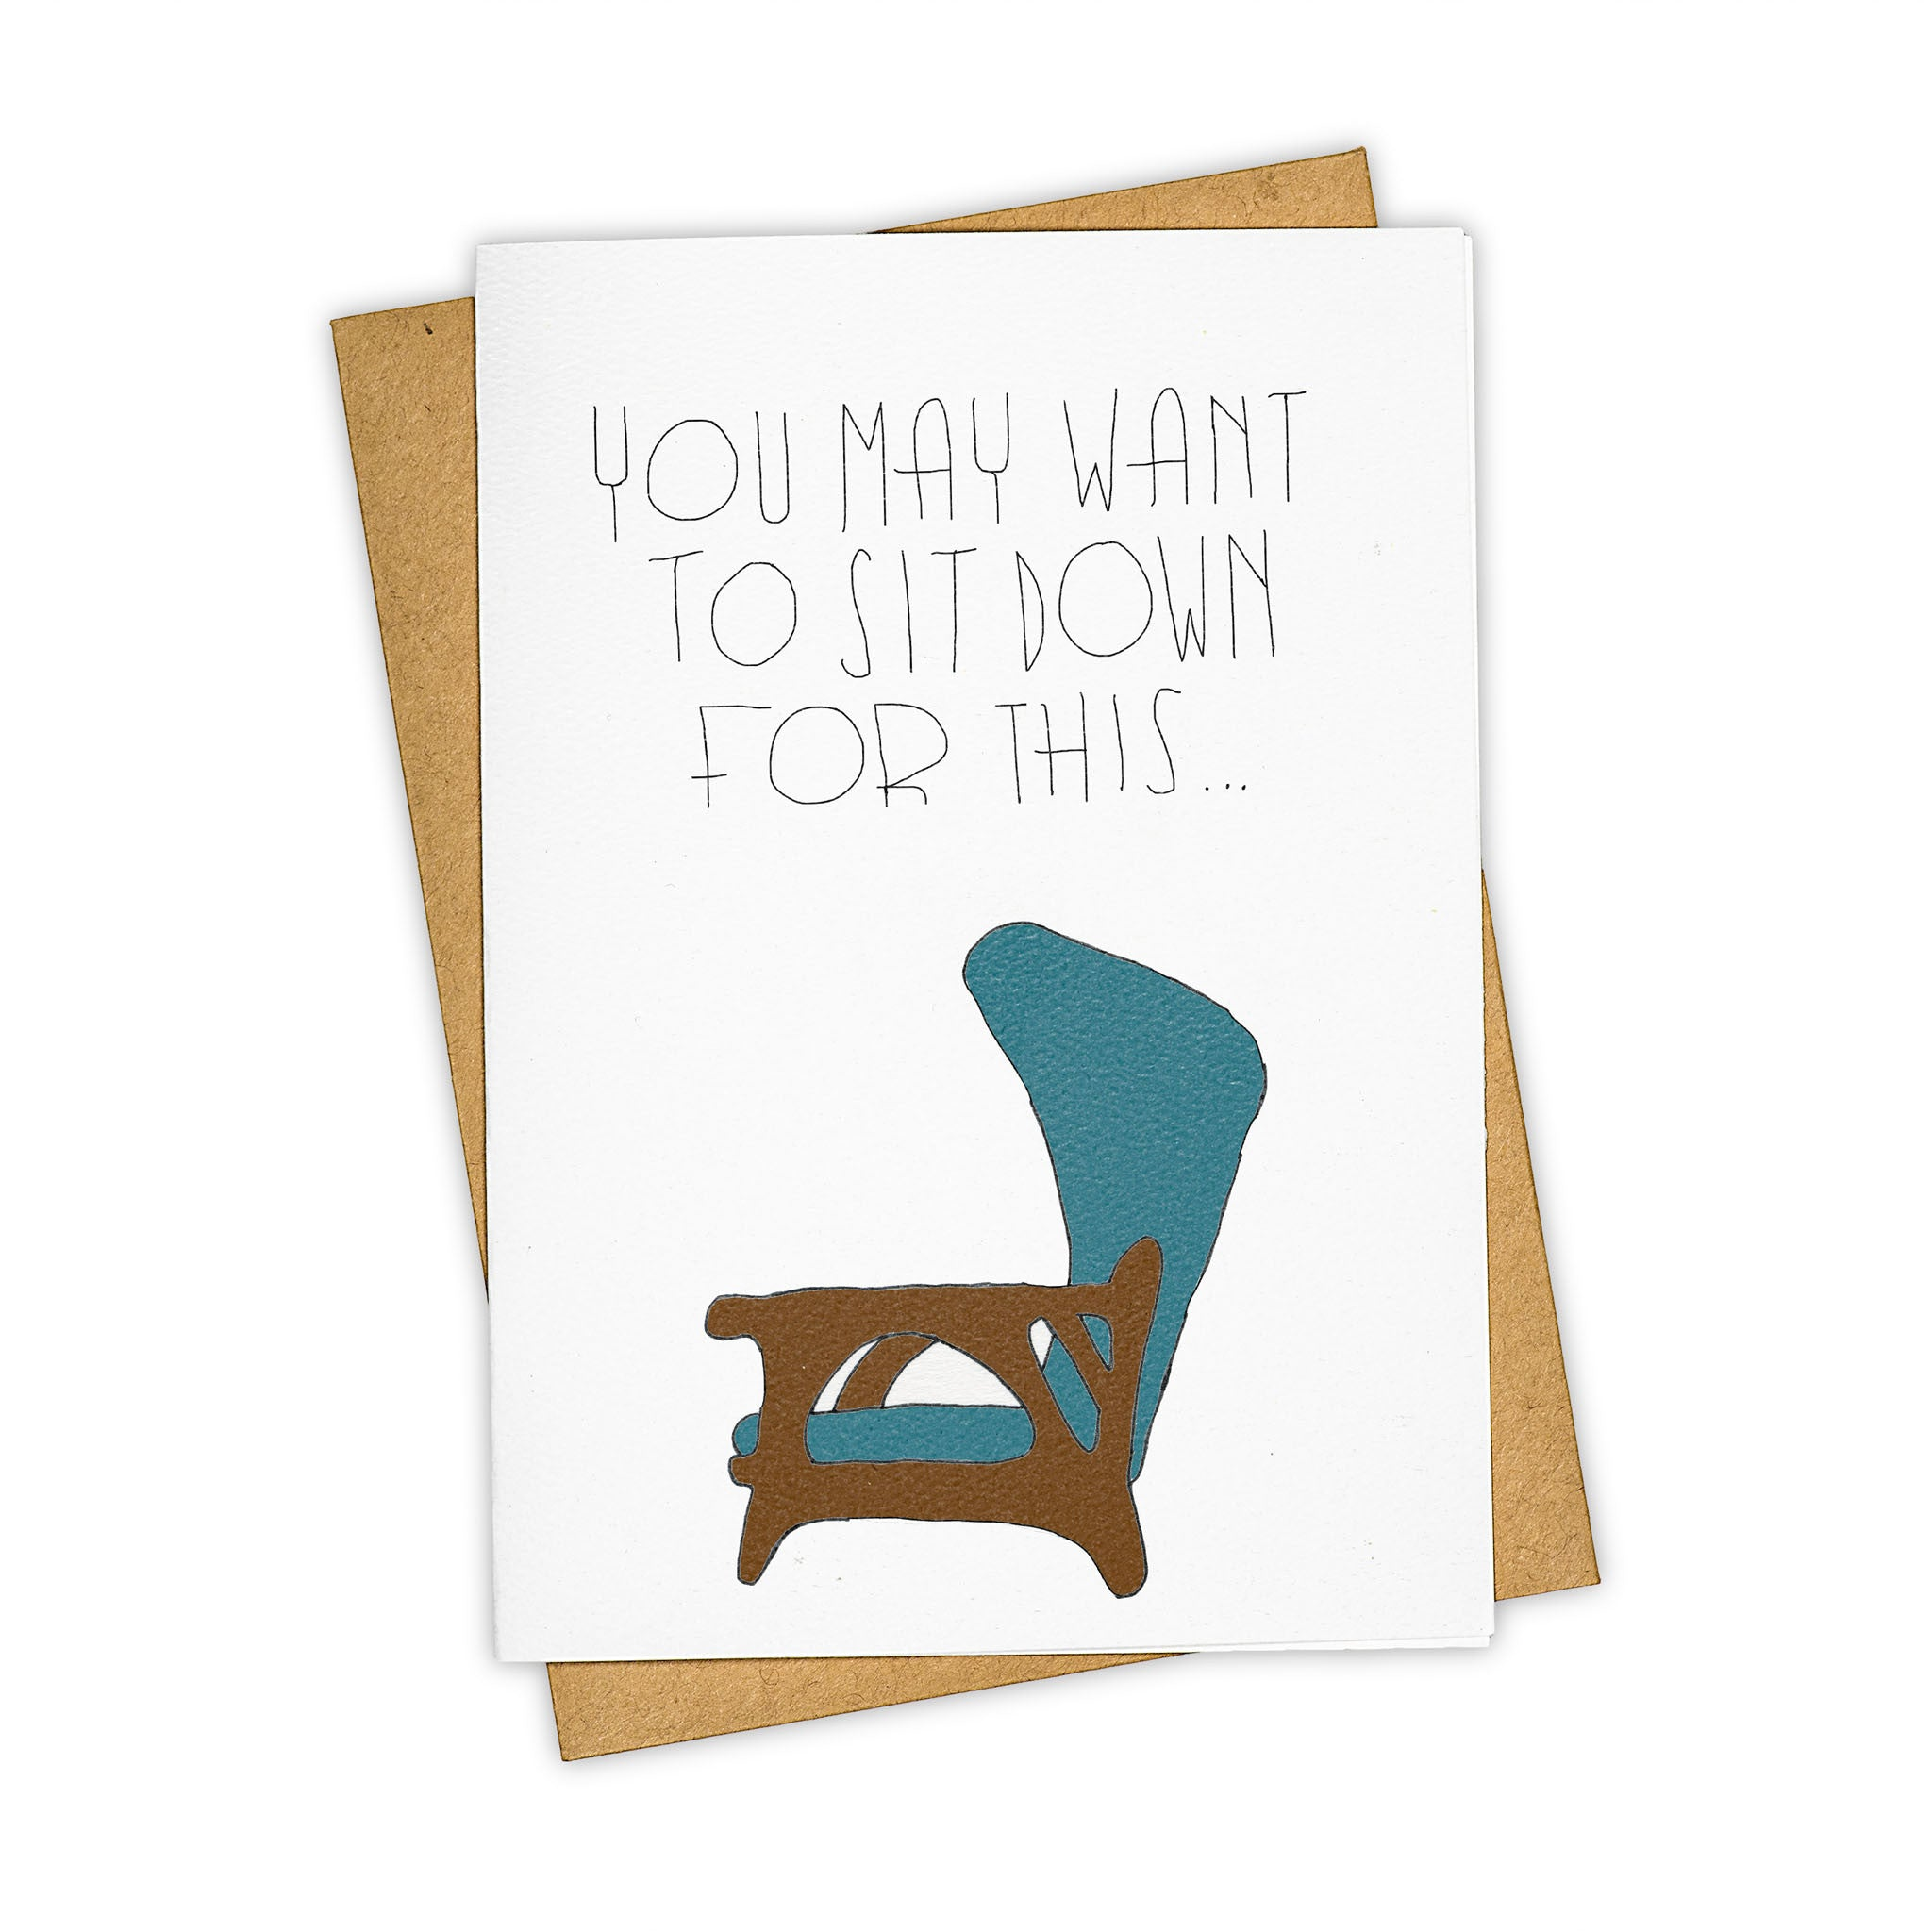 TAY HAM Blue Chair Mid Century Vintage Friendship Card